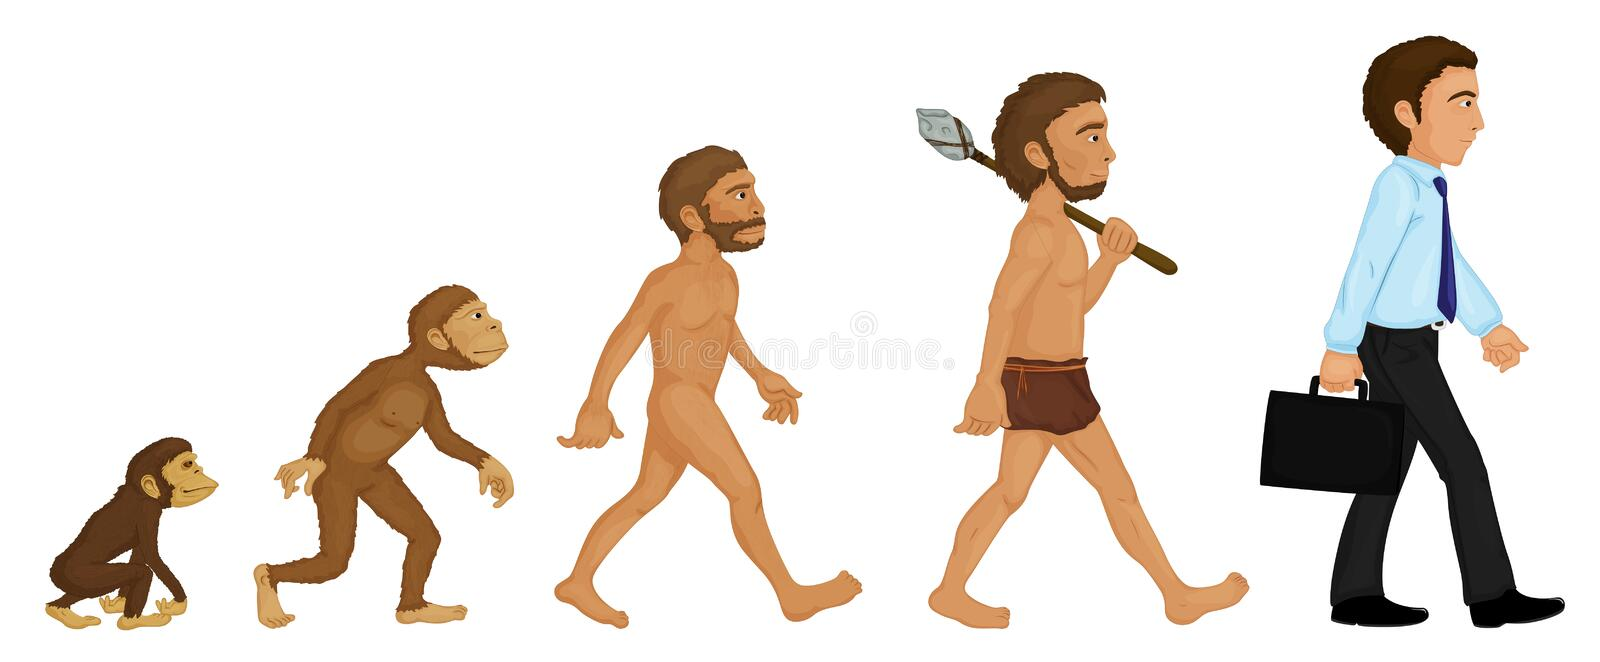 Evolutie stock illustratie